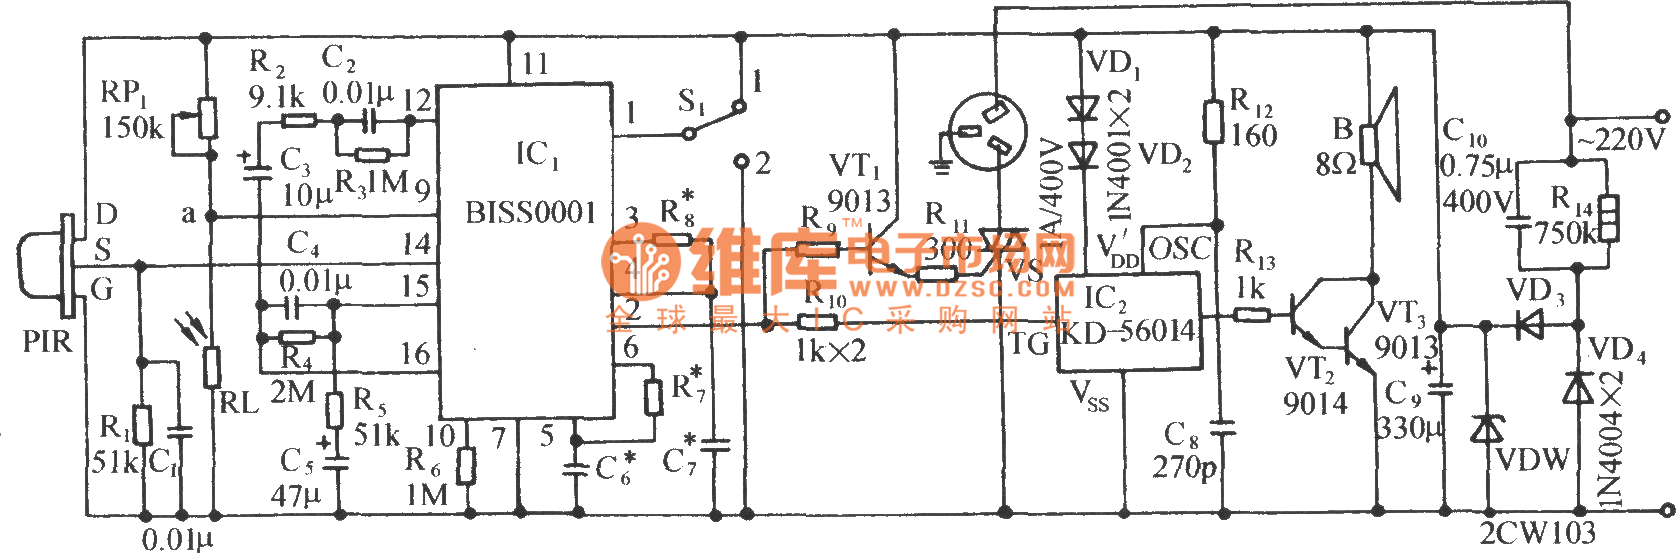 Using Biss0001 Infrared Sensor Automatic Nighttime Lighting Control Digitaltheremin Basiccircuit Circuit Diagram Seekiccom